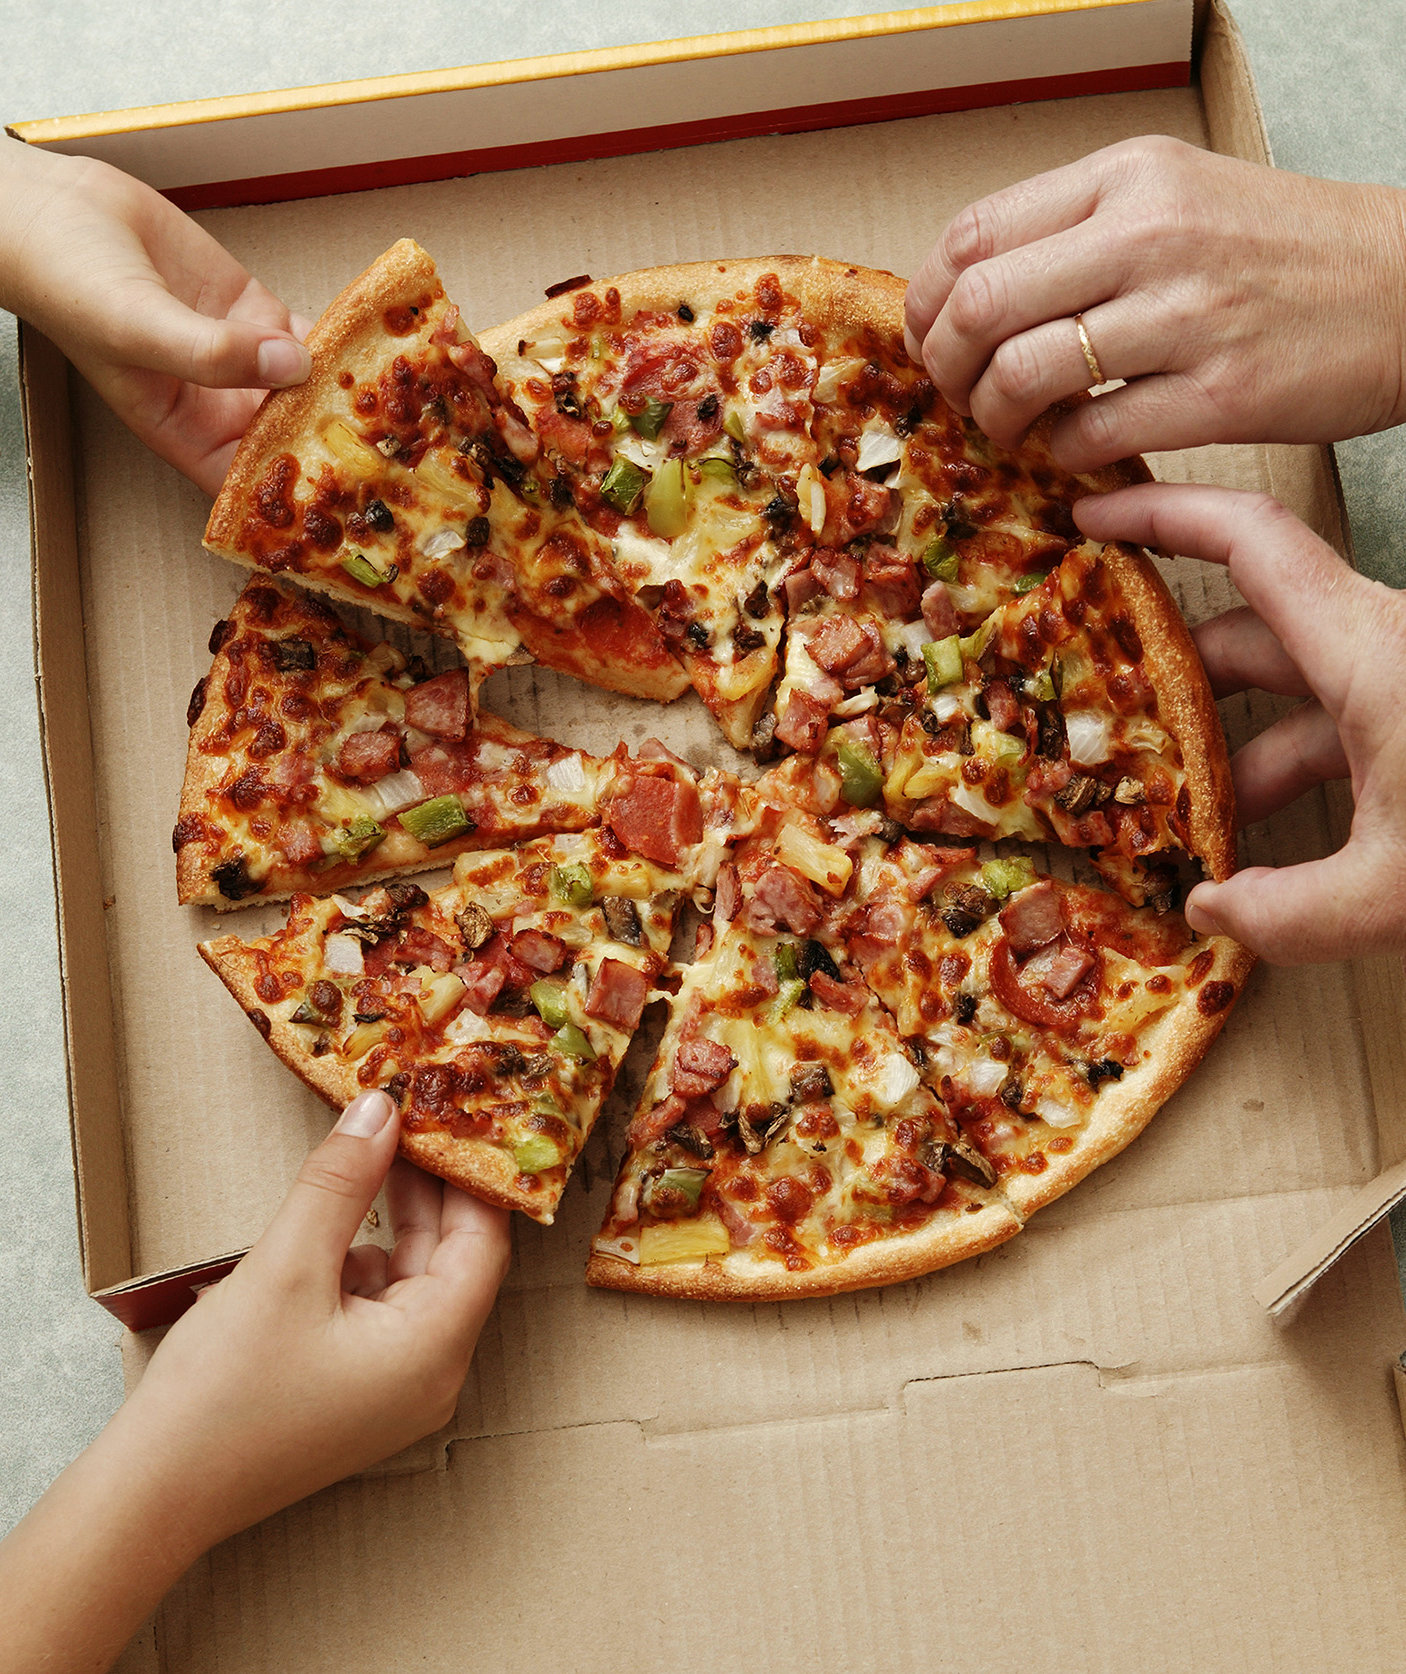 Most Pizzas Are Round. So Why Are Pizza Boxes Square?